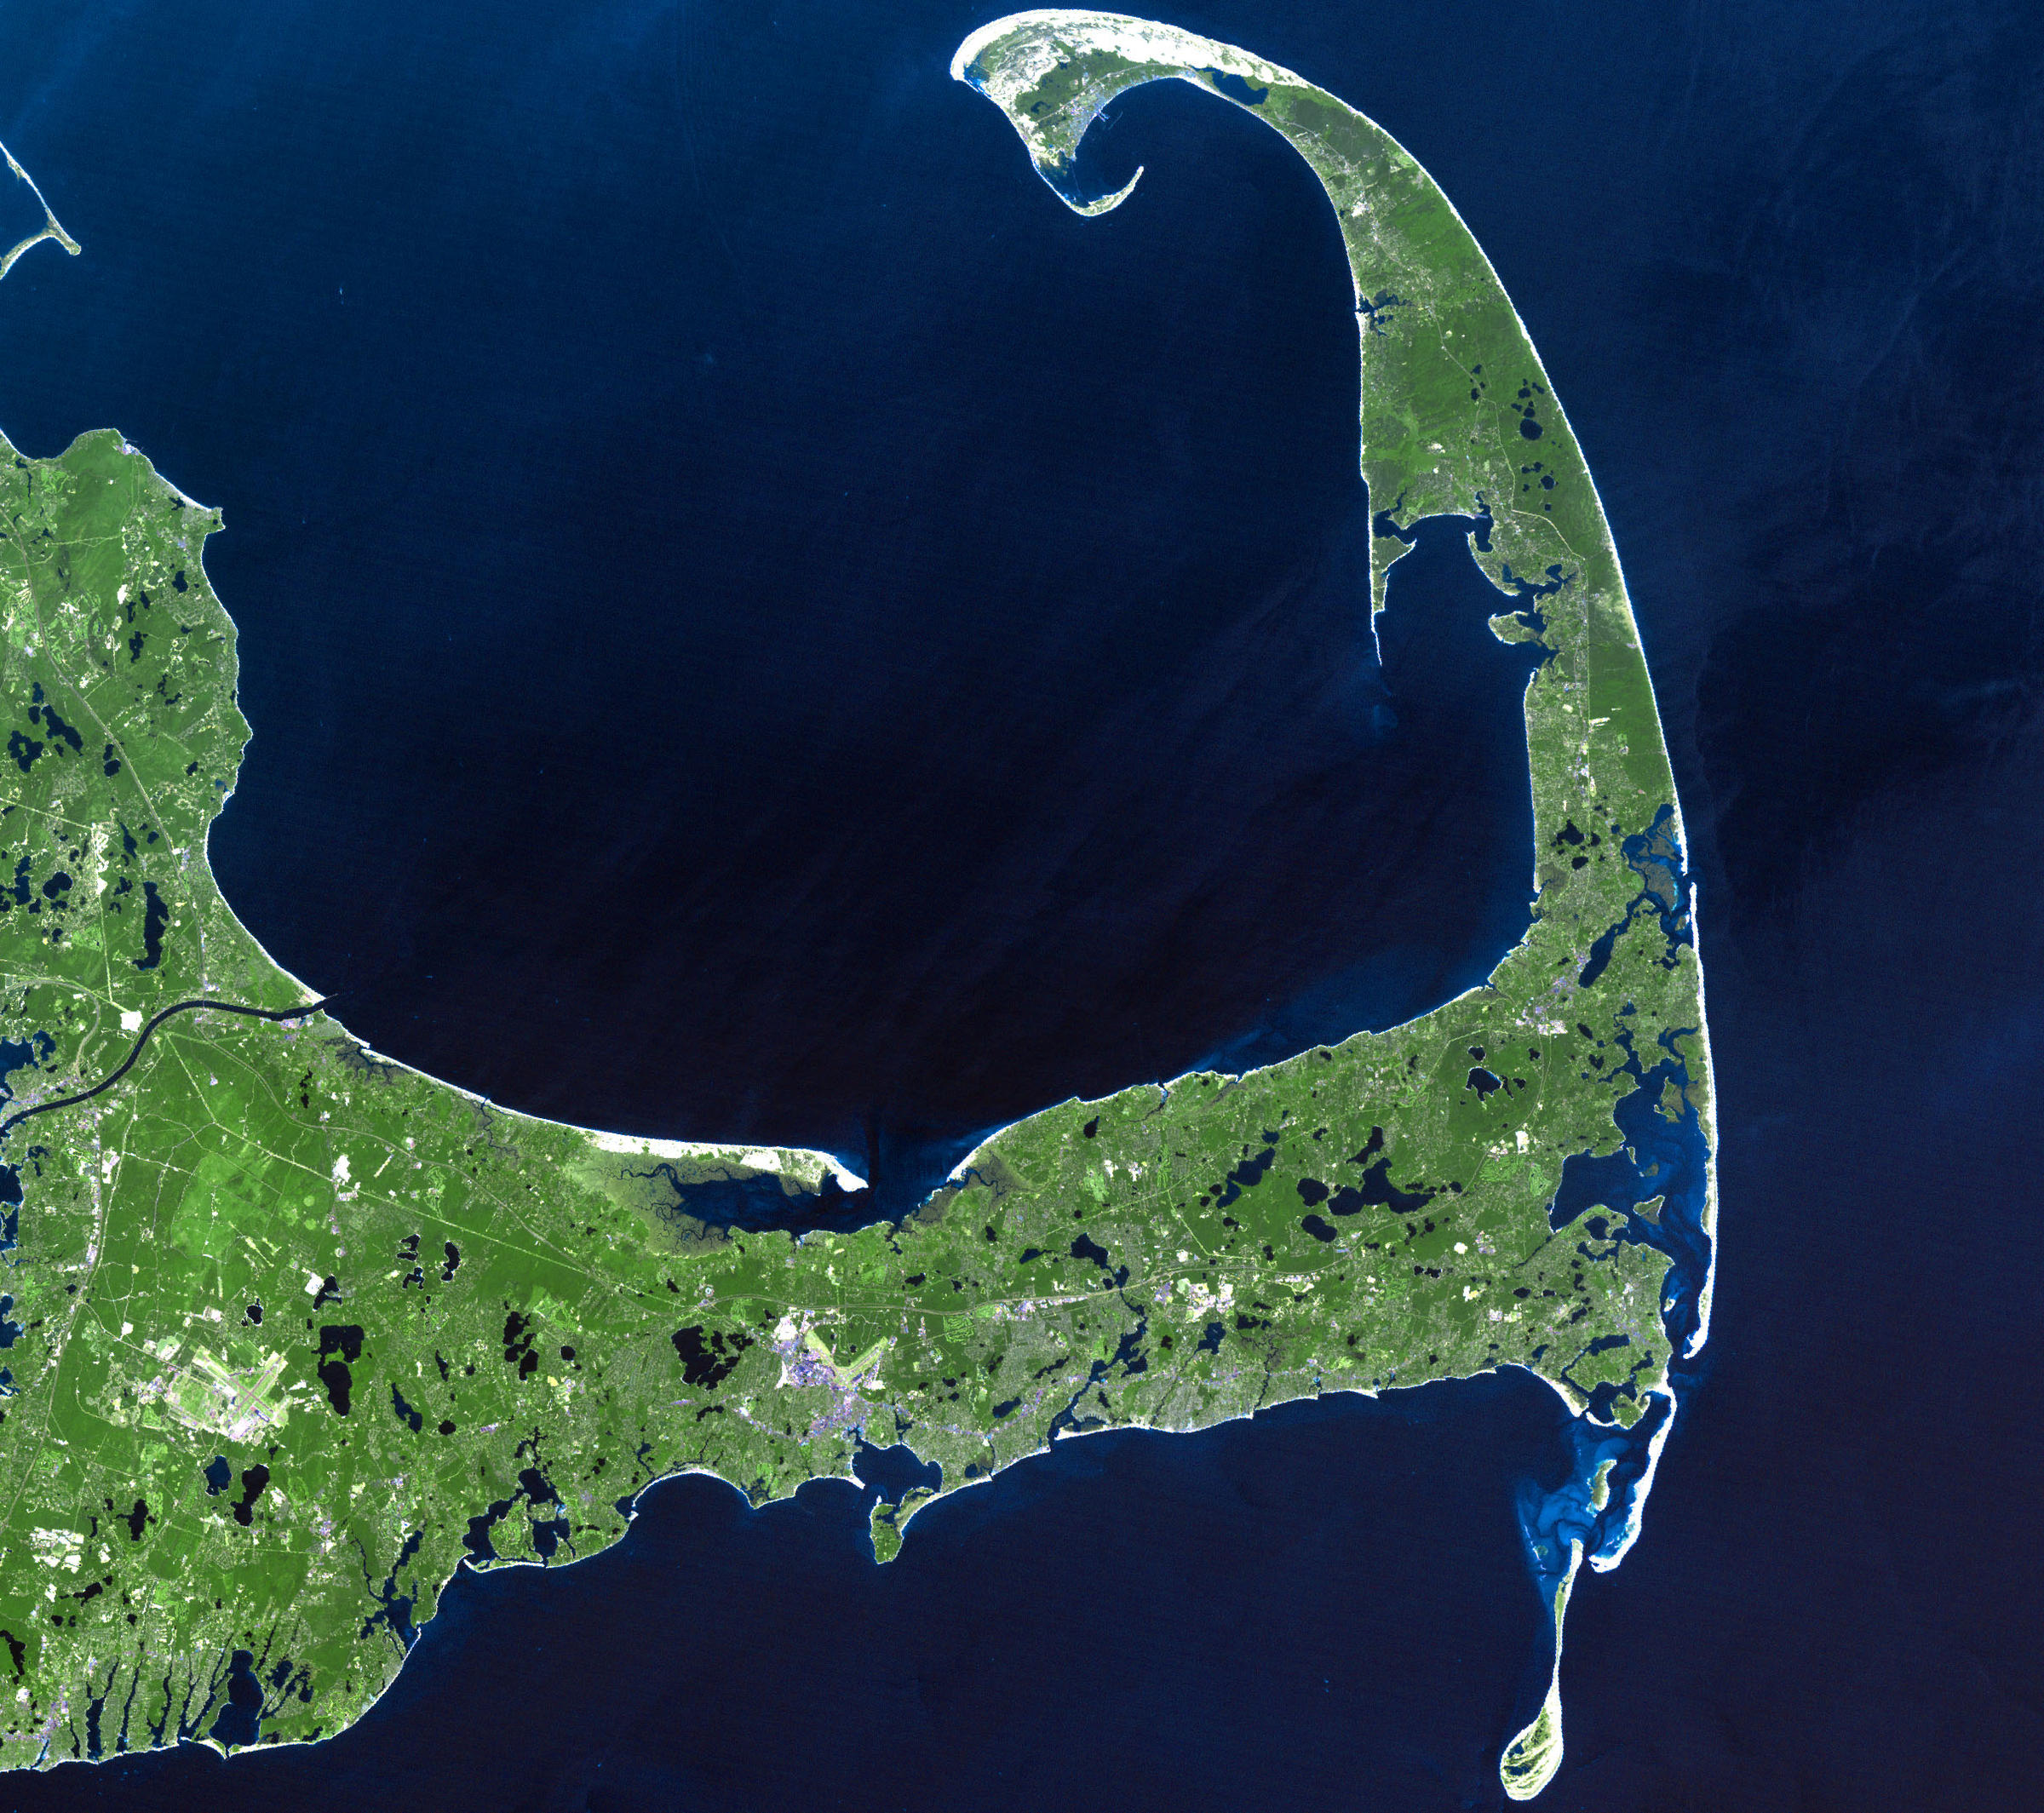 Wcai S Local News Roundup Mini Patriot Place Proposed In Sandwich Shark In The Bay Lyme Testing Cai A stoat sandwich is a sandwich made with the meat of a stoat. wcai s local news roundup mini